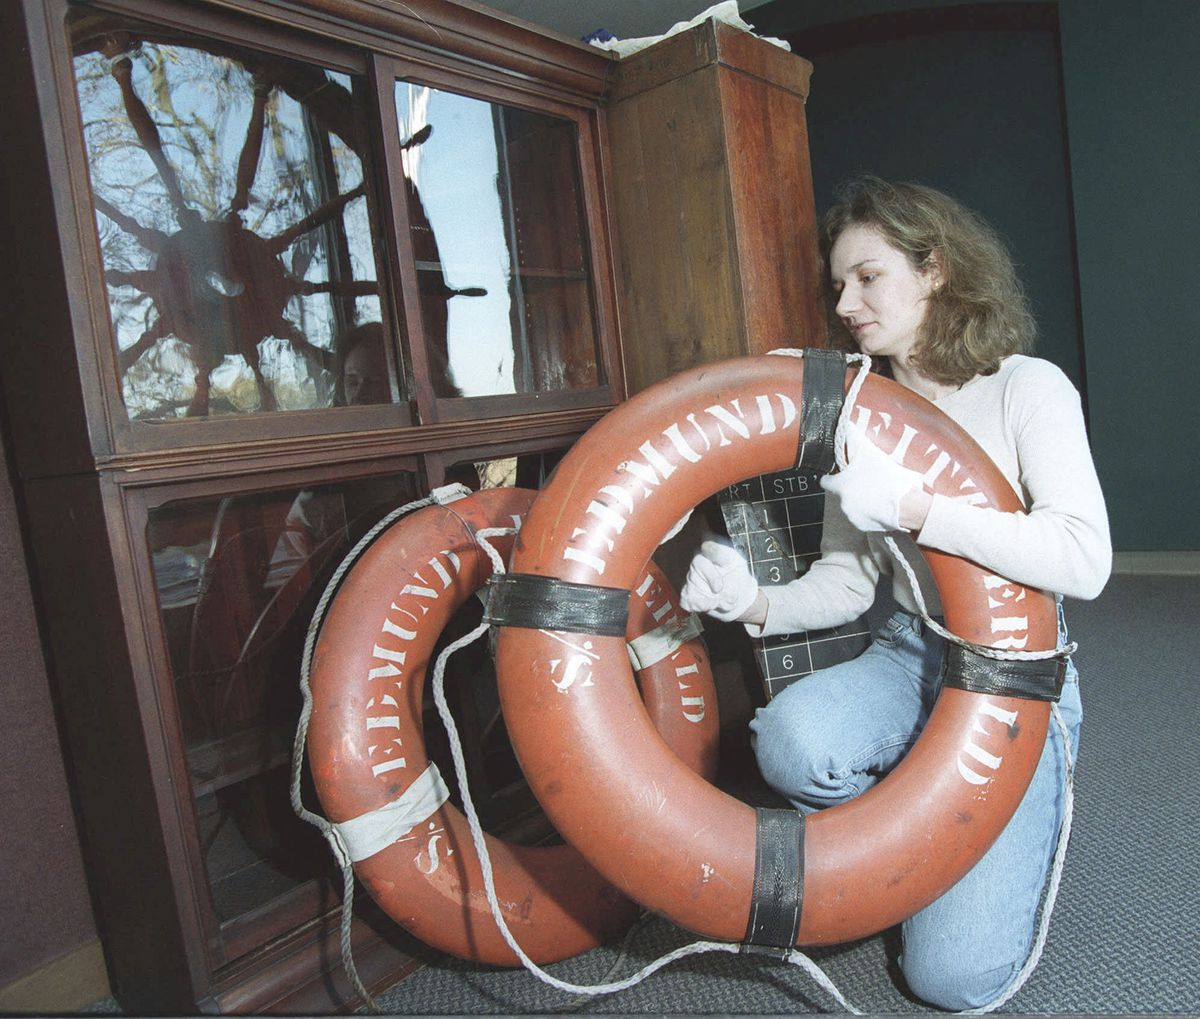 Life rings from the Edmund Fitzgerald at the Inland Seas Maritime Museum in Vermilion, Ohio in 2000.